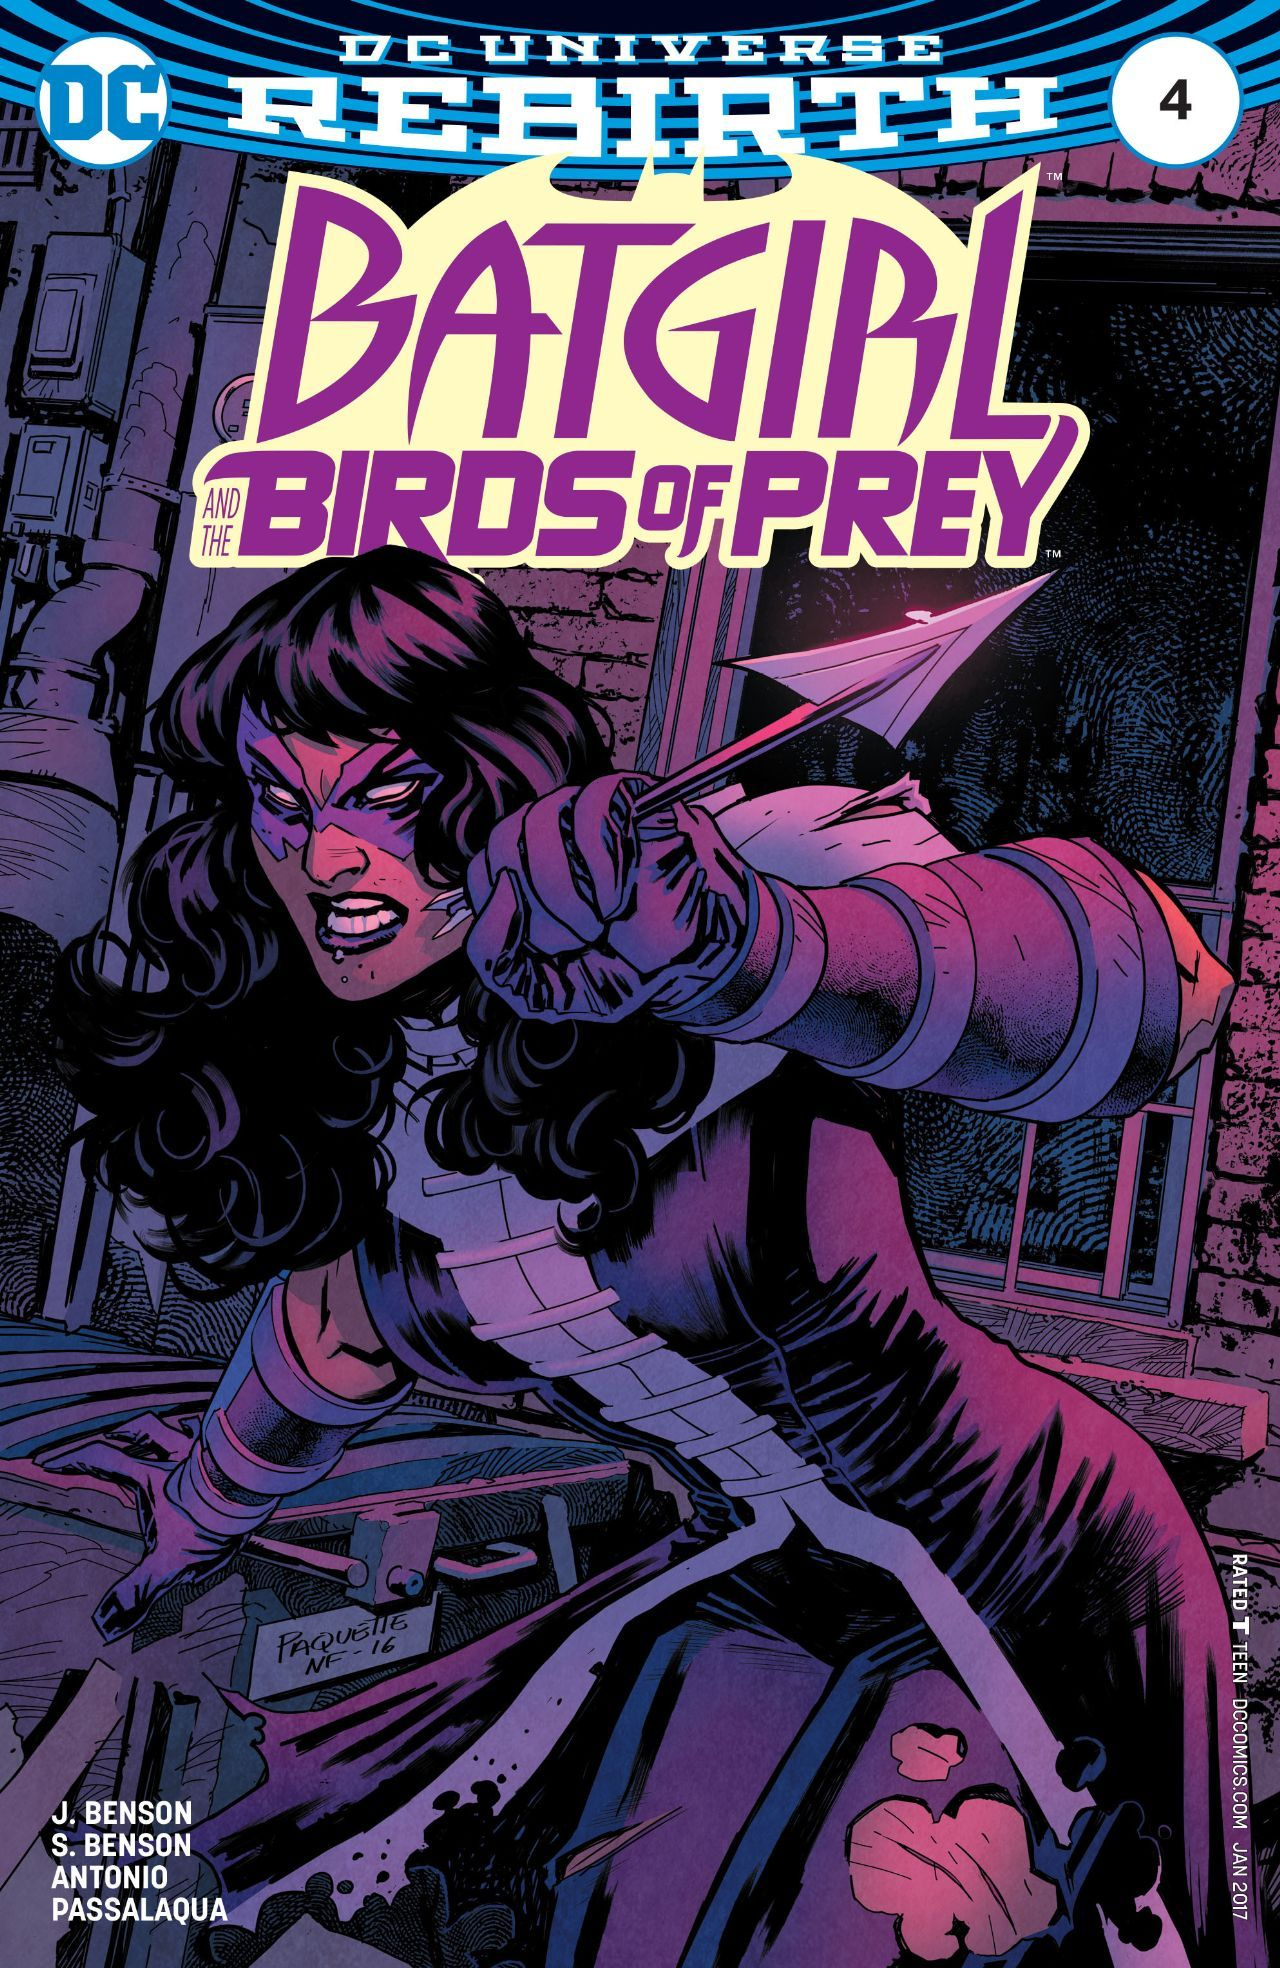 Batgirl and the Birds of Prey 4 Owned ics